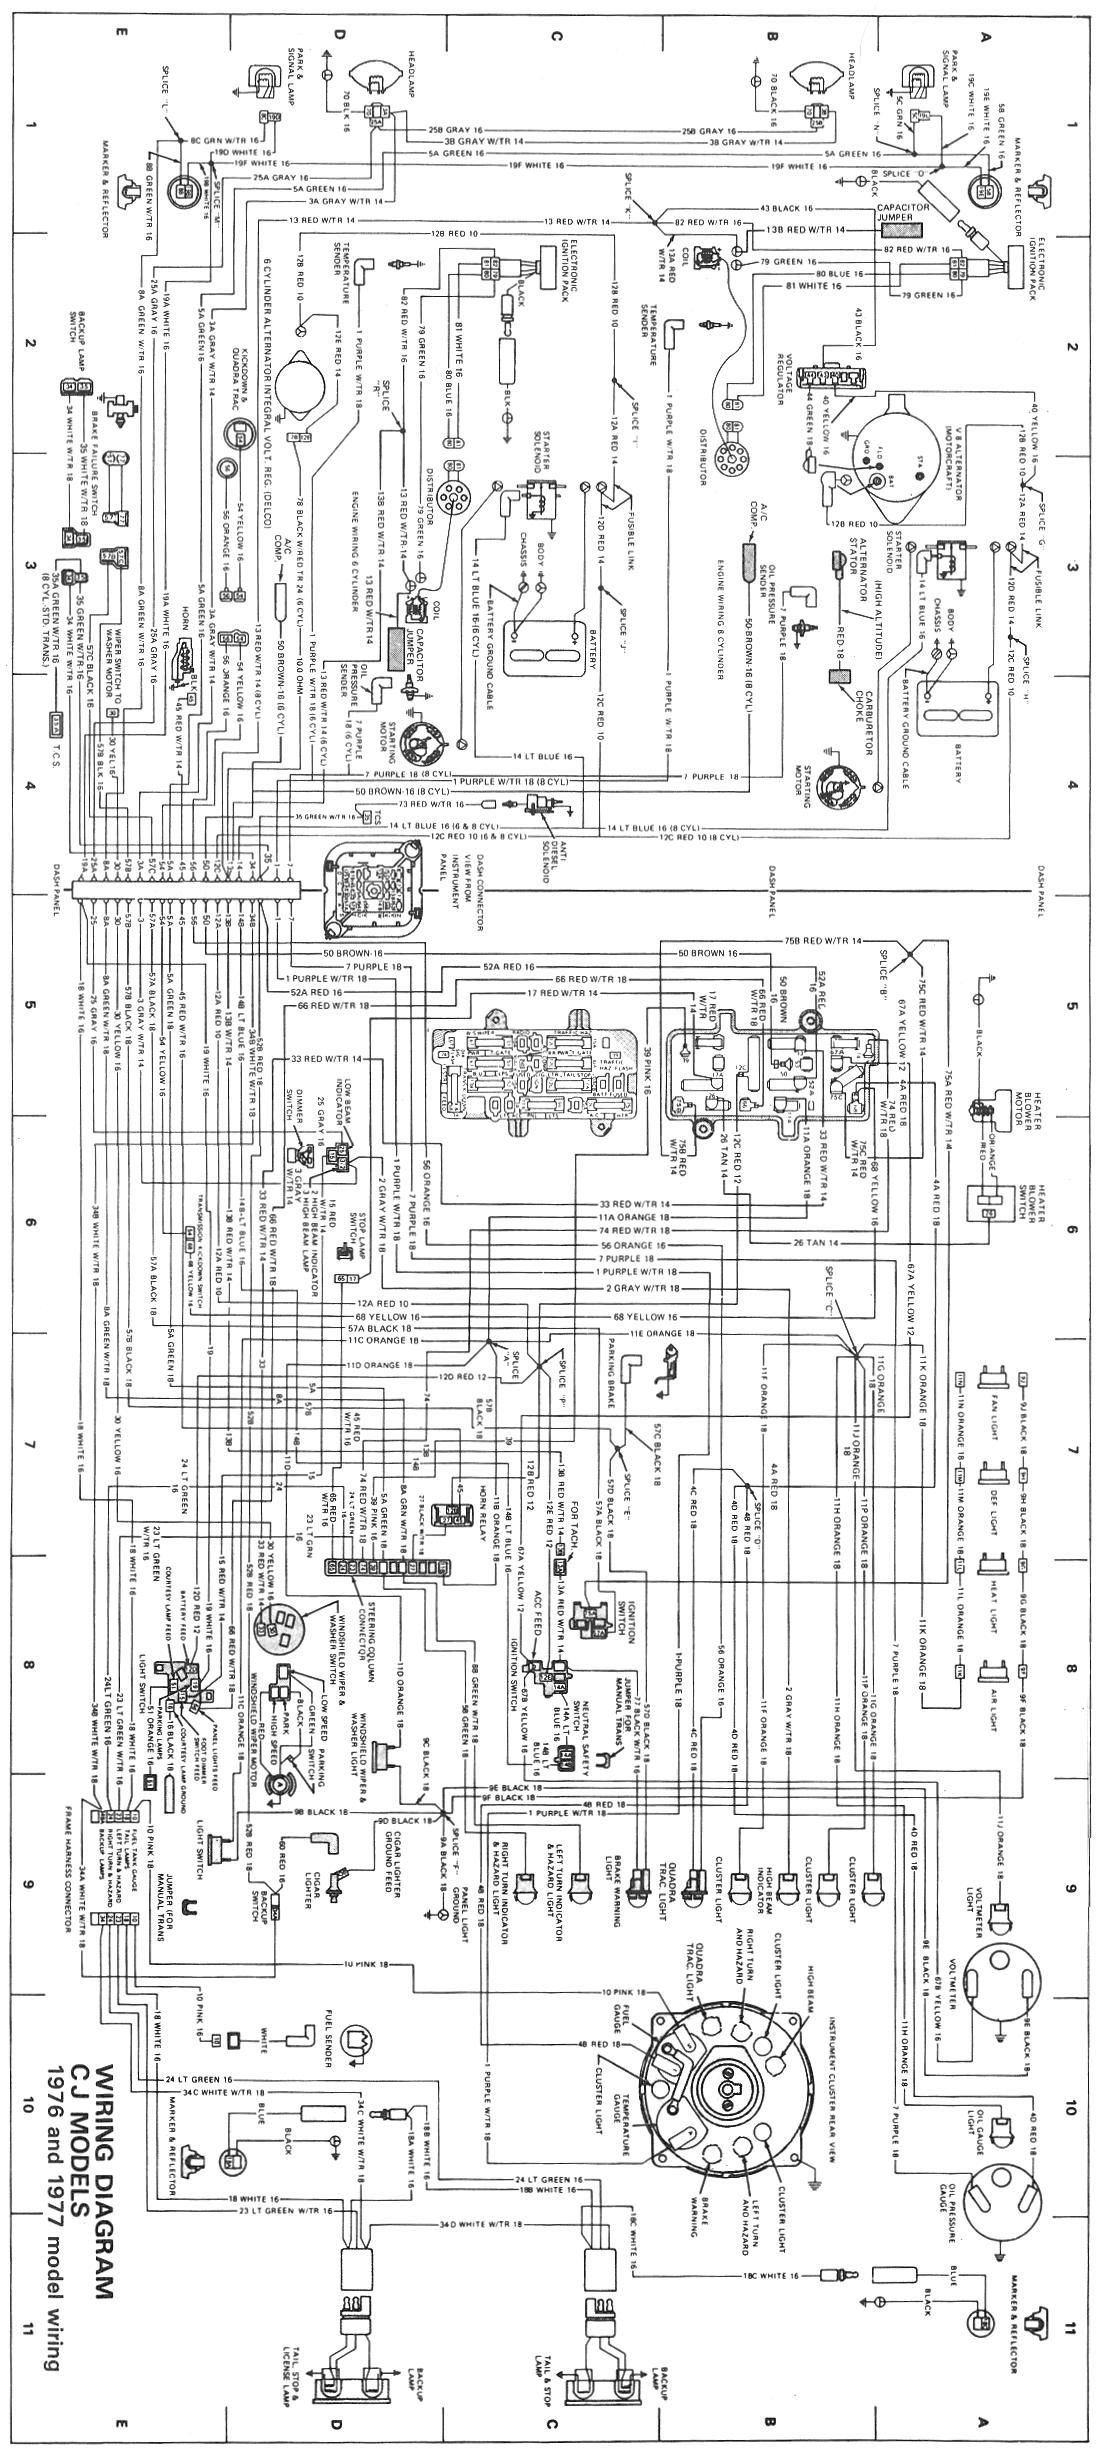 cj wiring diagram 1976 1977 jpg 1 100 2 459 pixels 1976 jeep cj5 rh pinterest es jeep cj5 electrical diagram 1973 jeep cj5 wiring diagram